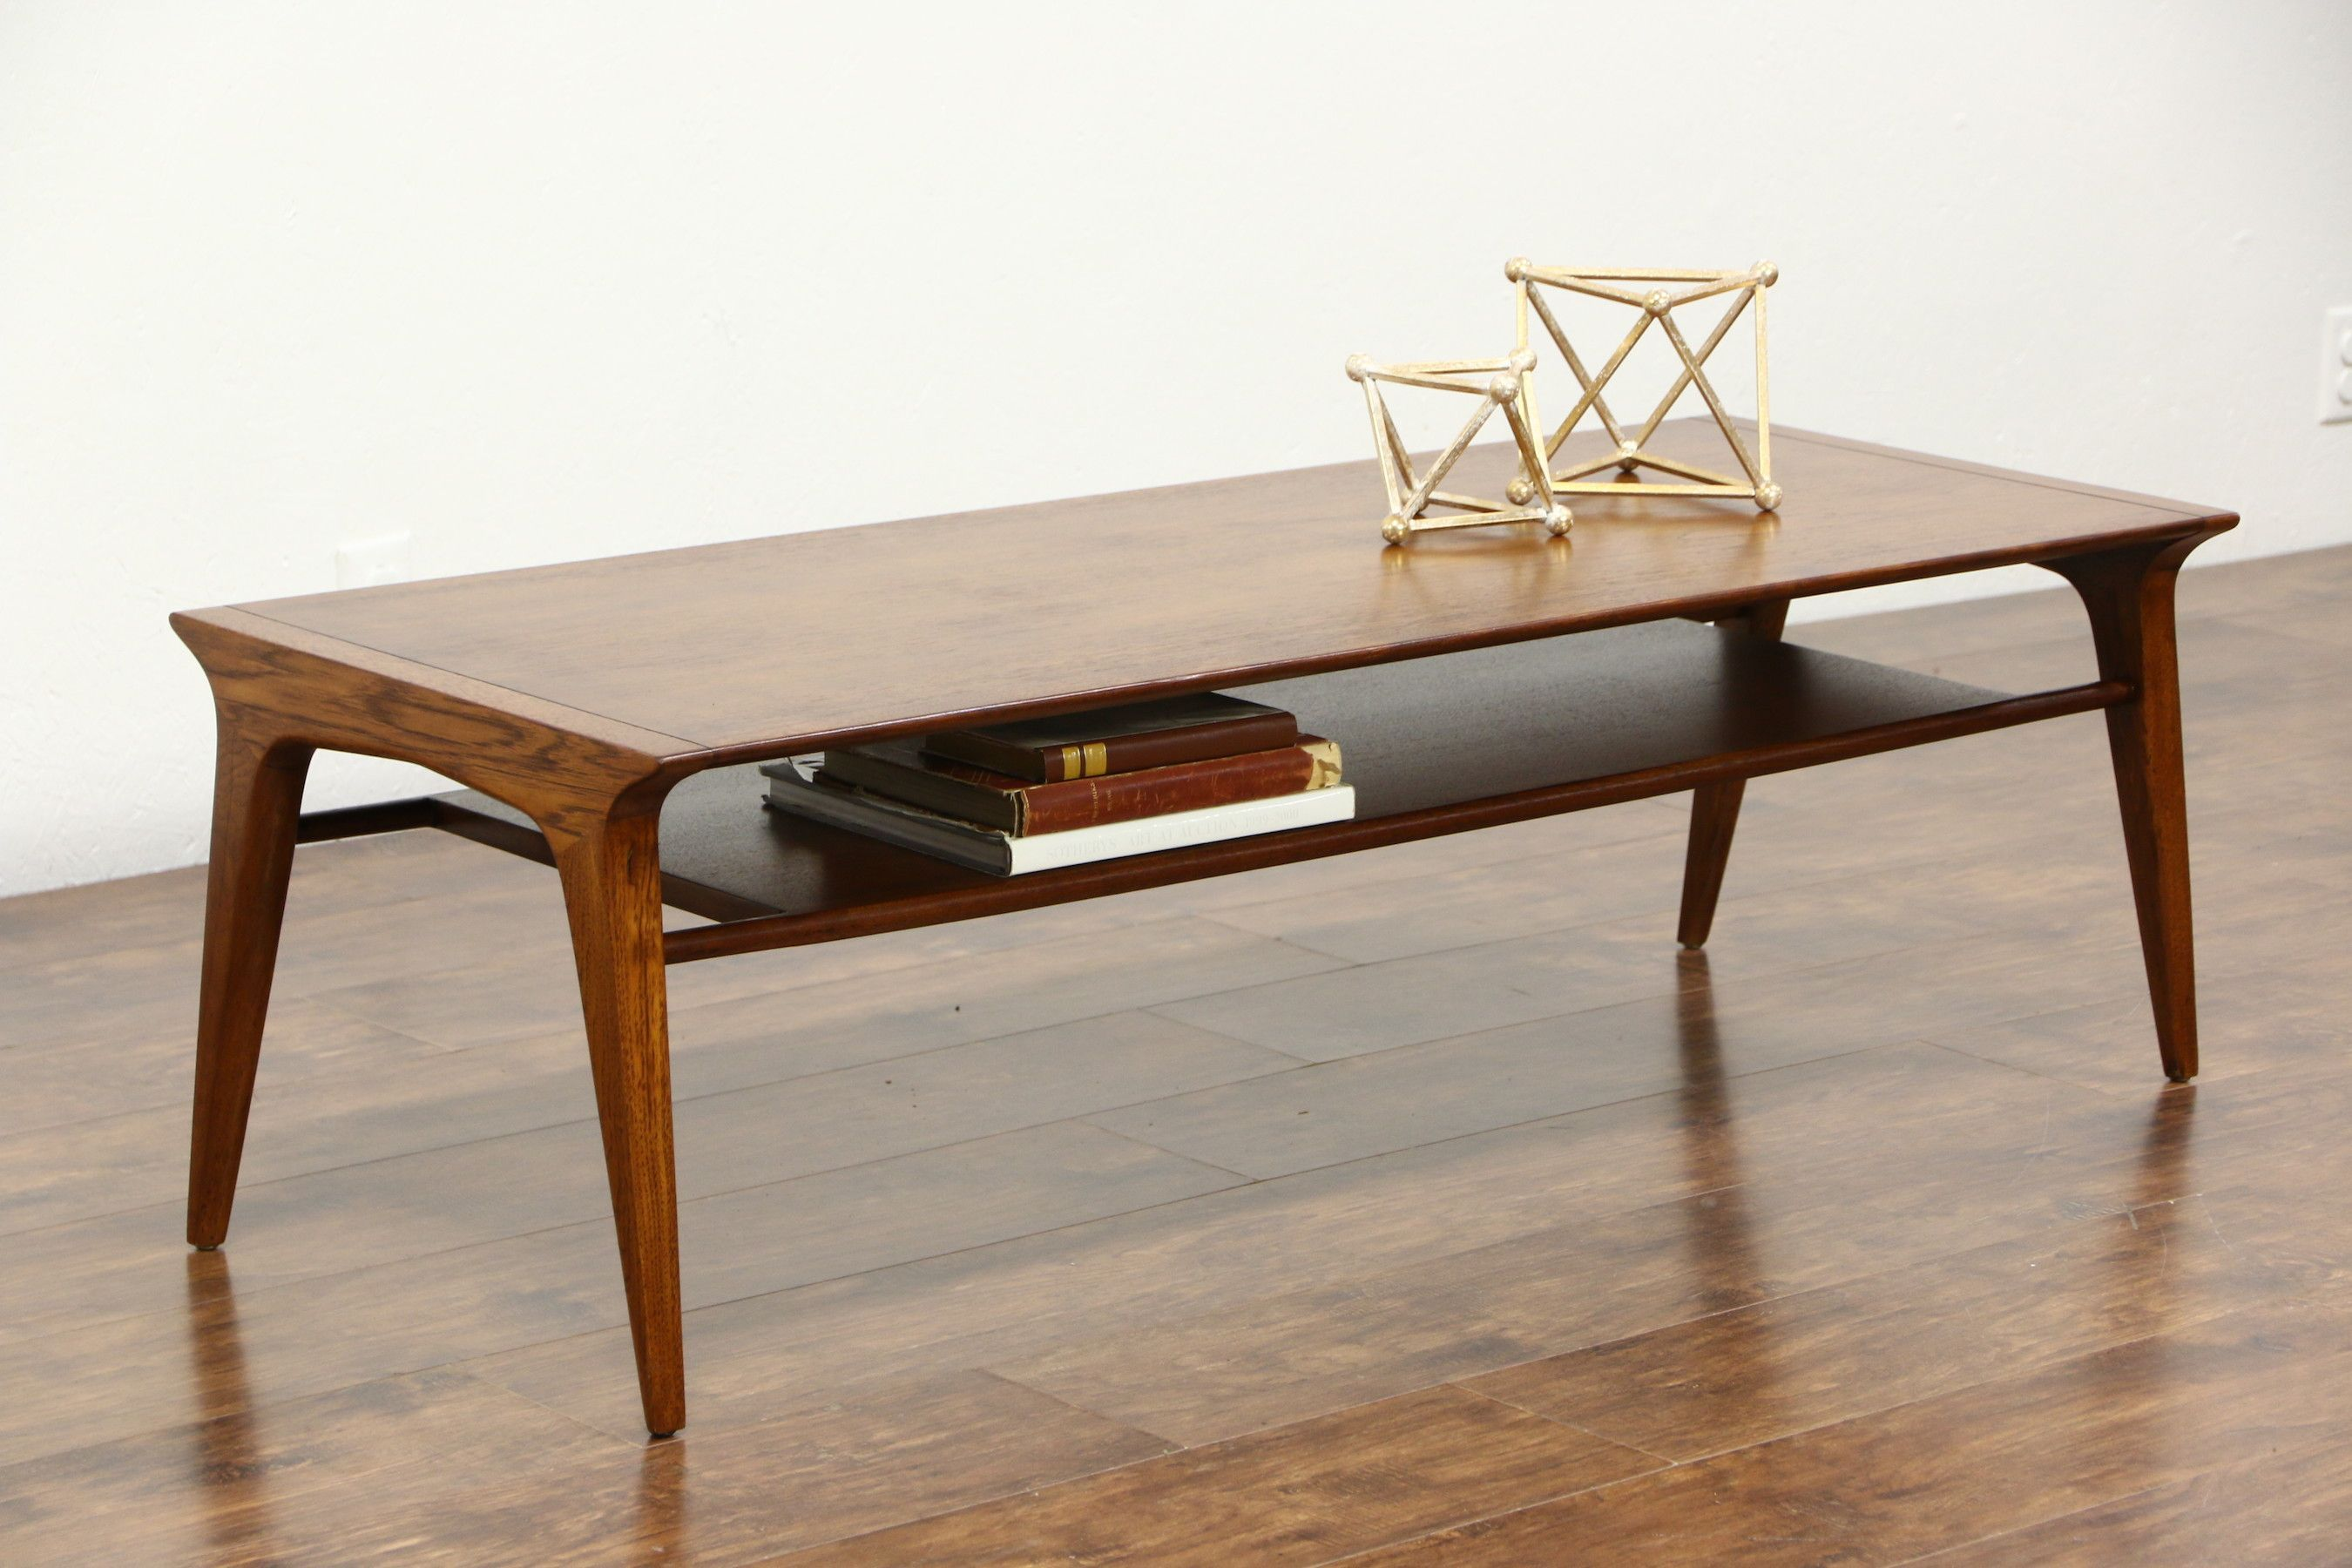 Signed Drexel Profile collection by designer John Van Coert this coffee or cocktail table is walnut. The glowing renewed finish is in excellent condition on  - Coffee Table - Ideas of Coffee Table #CoffeeTable